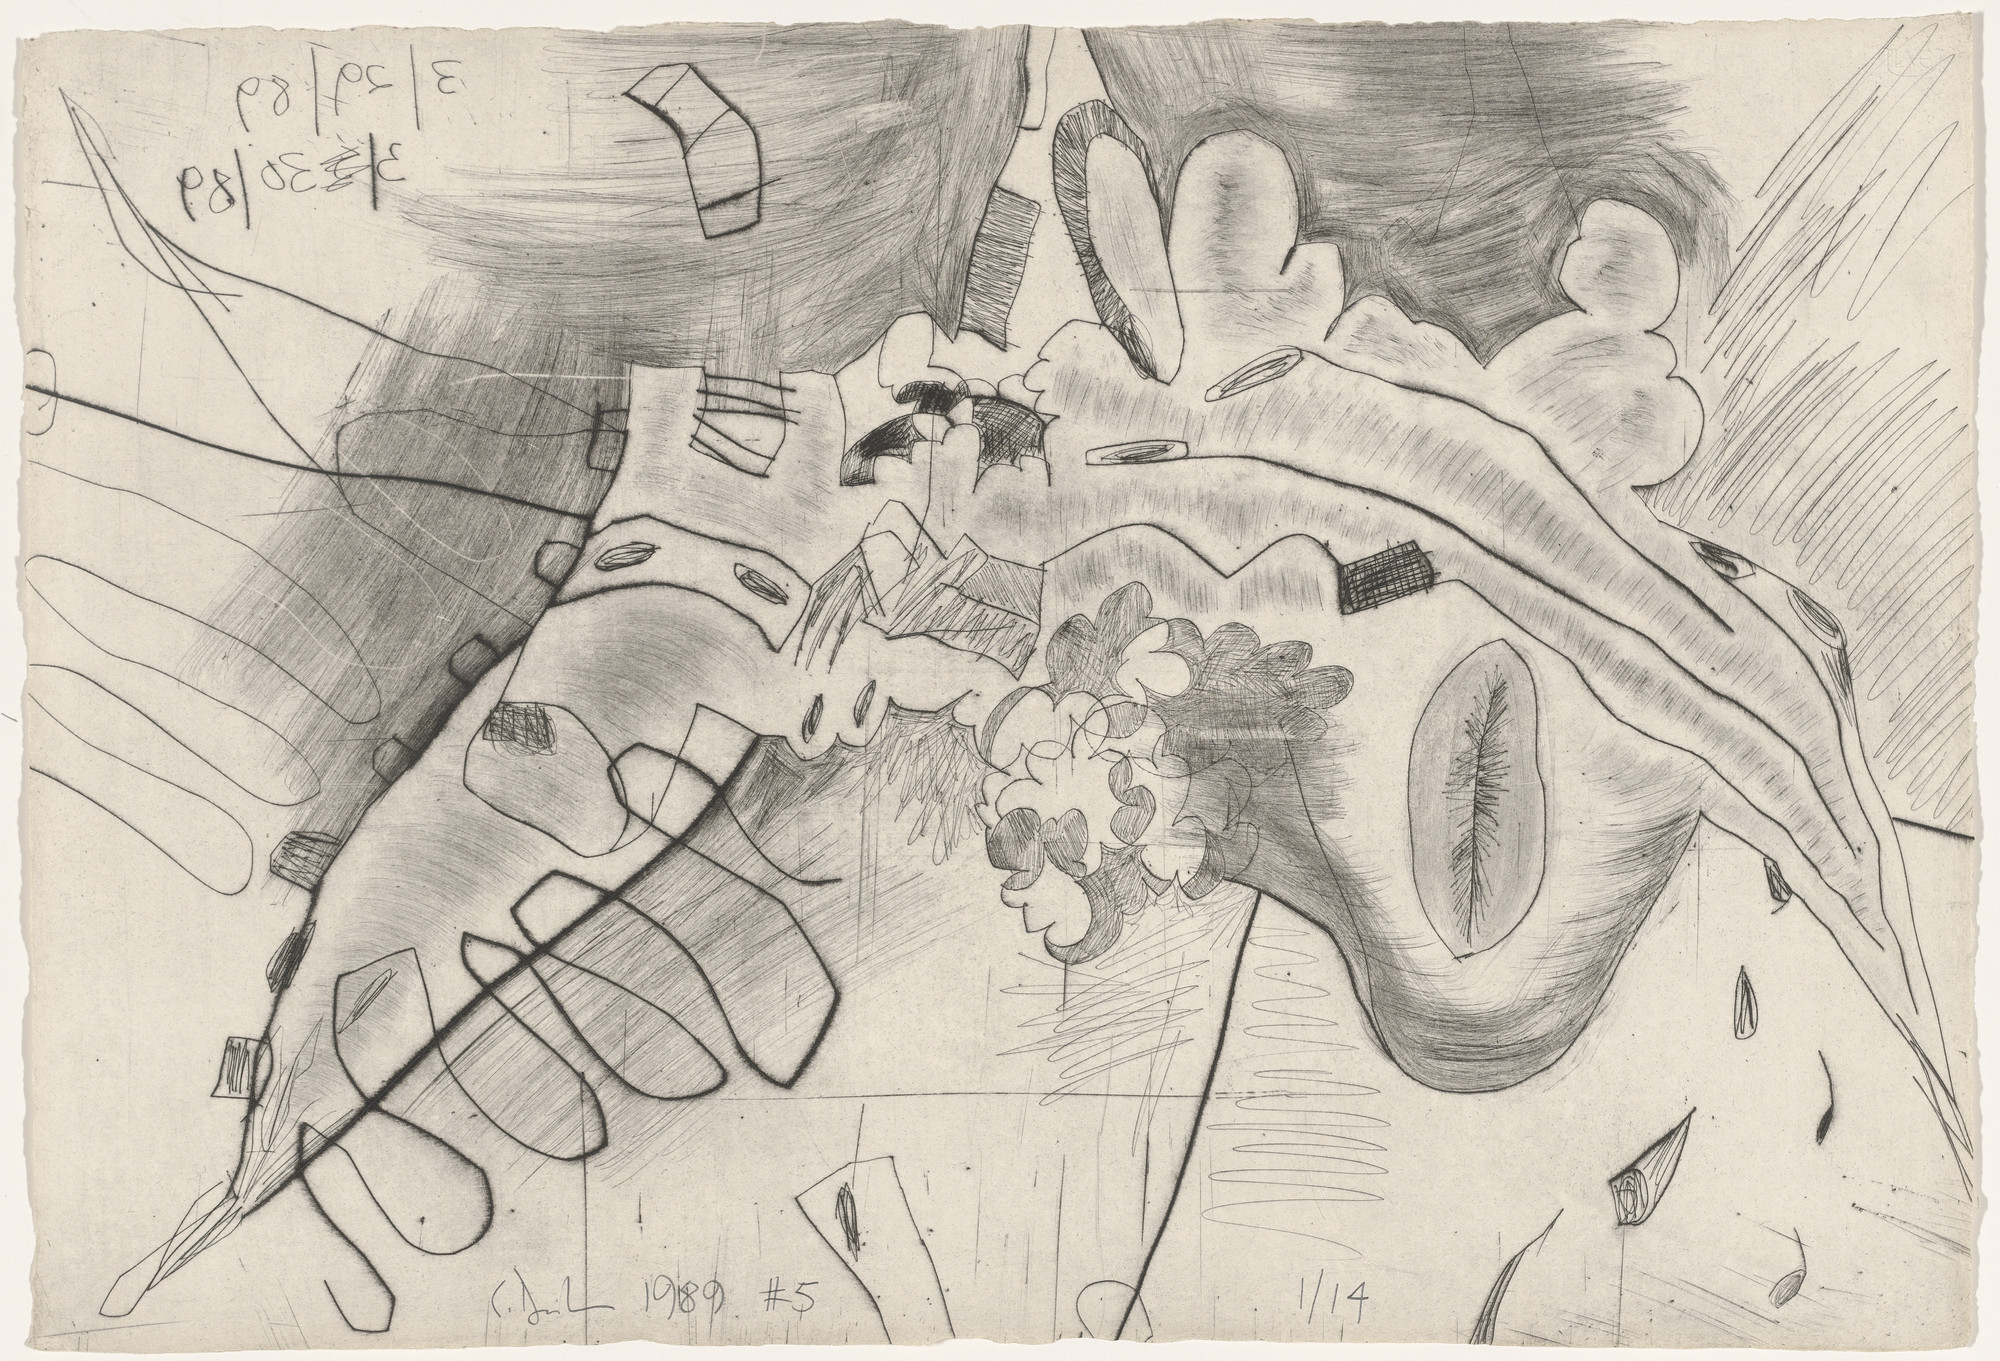 Carroll Dunham. Untitled from Shadows. 1989